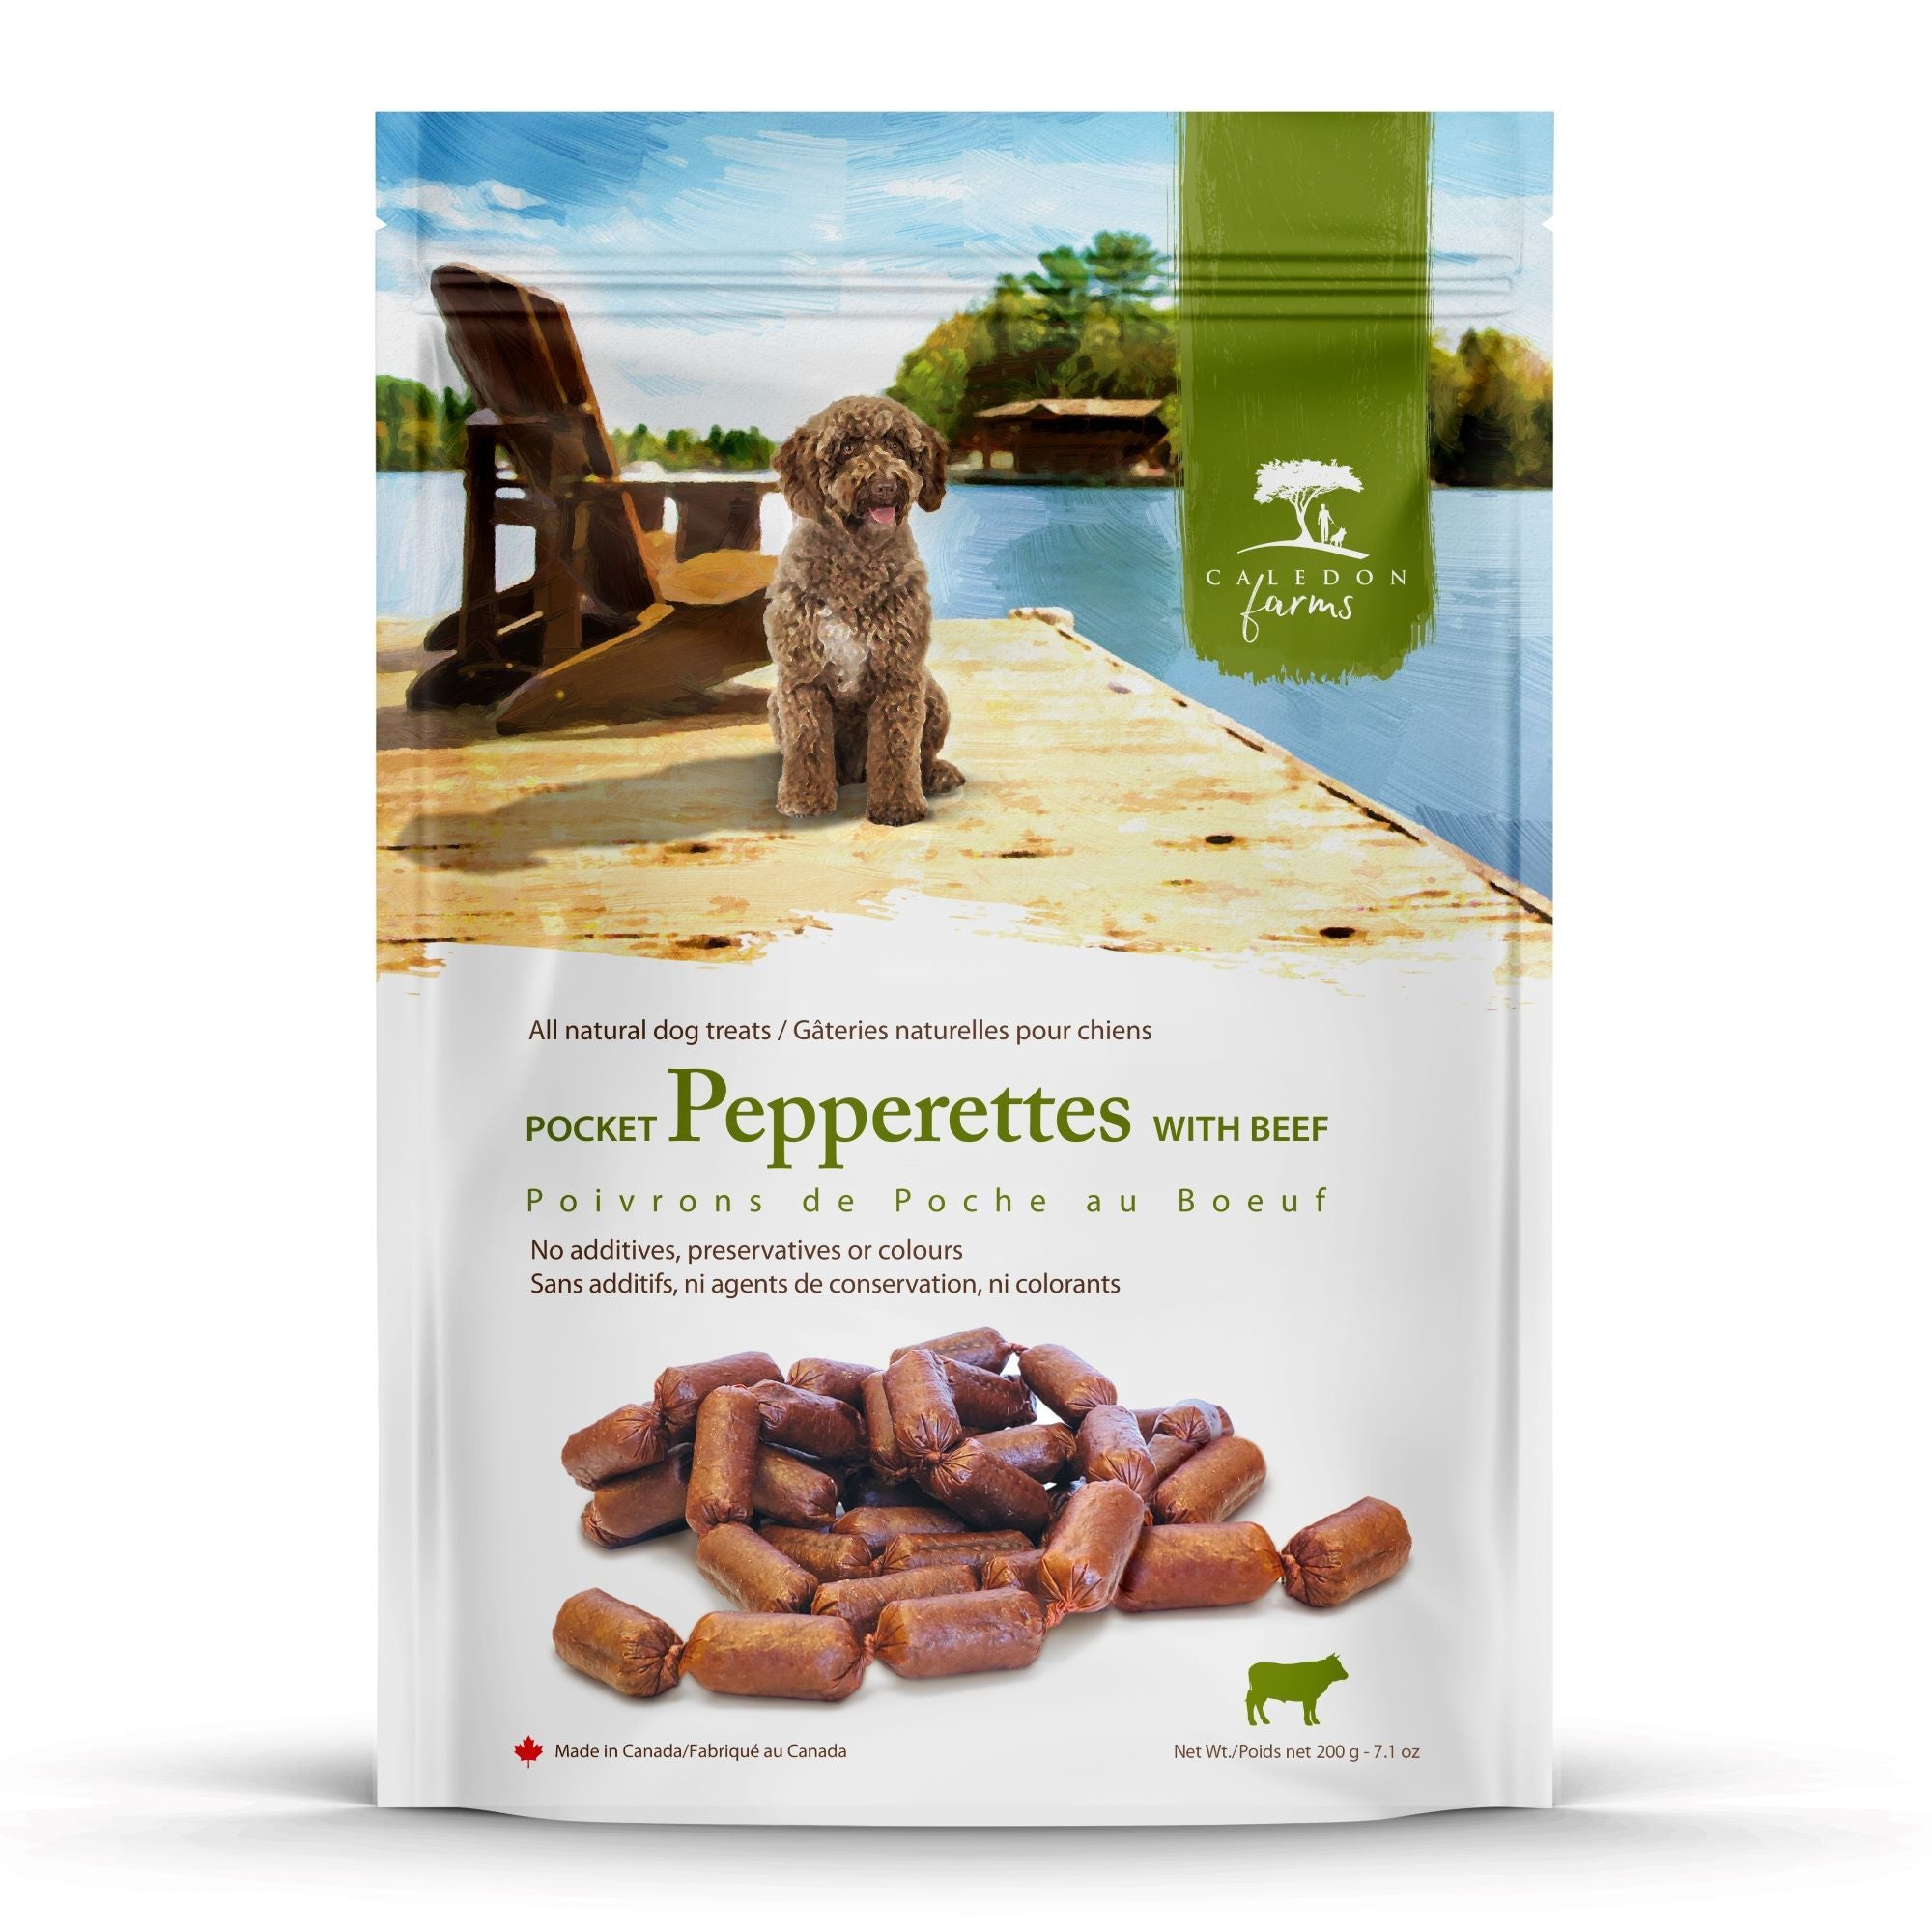 Beef Pepperettes Dog Treats Bag Front